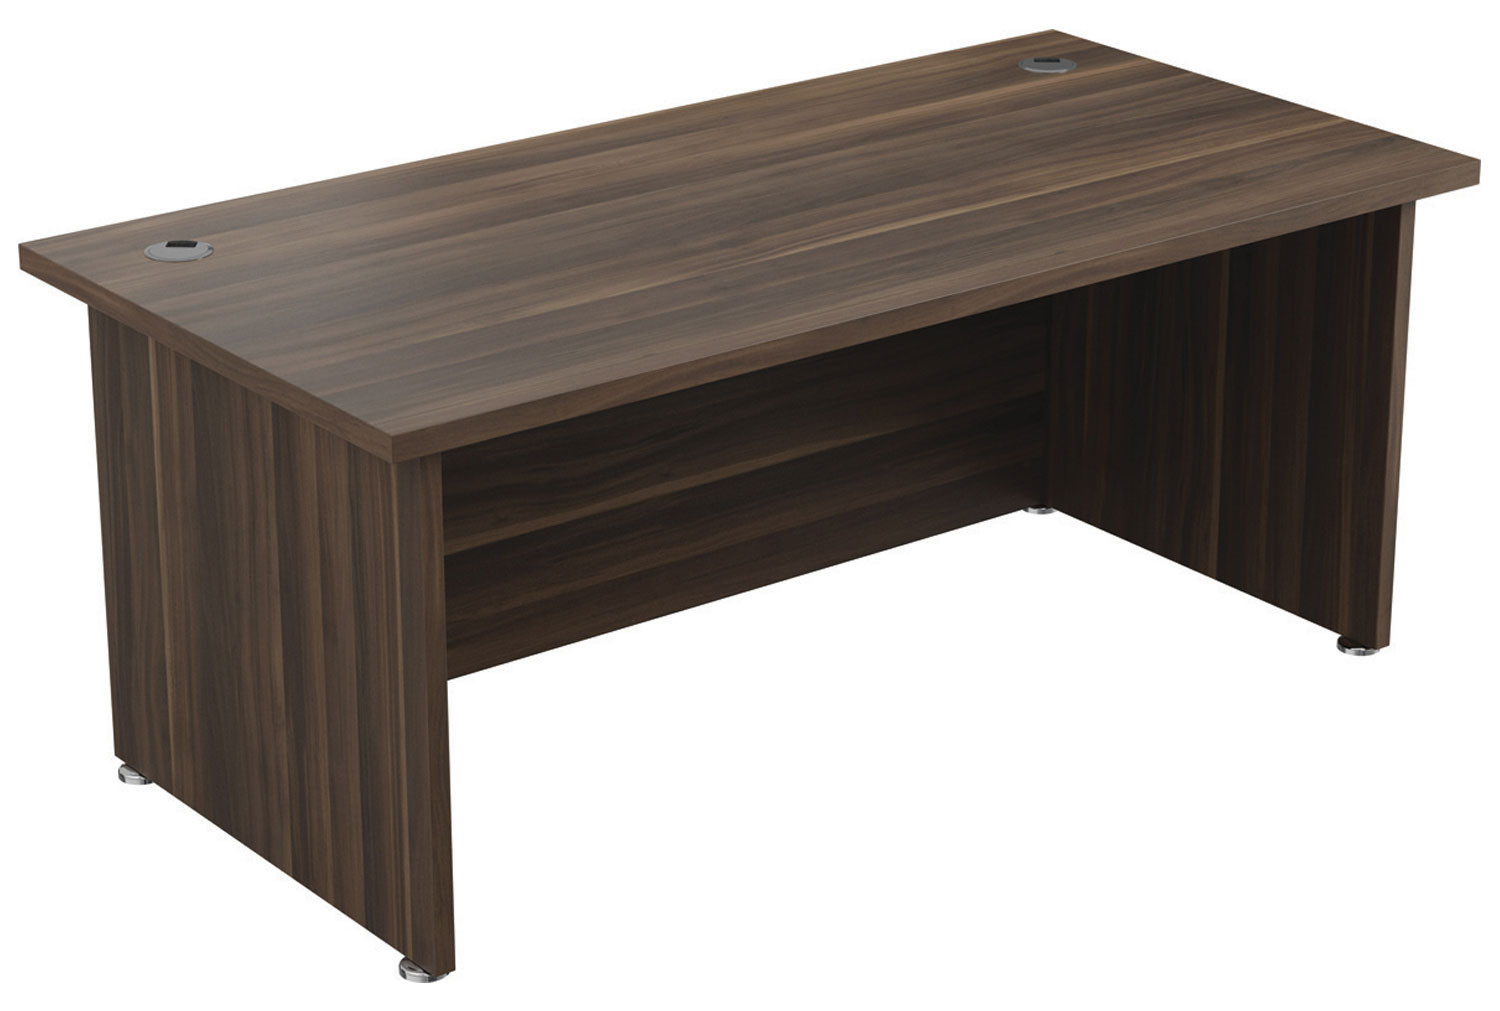 Viceroy Executive Rectangular Desk